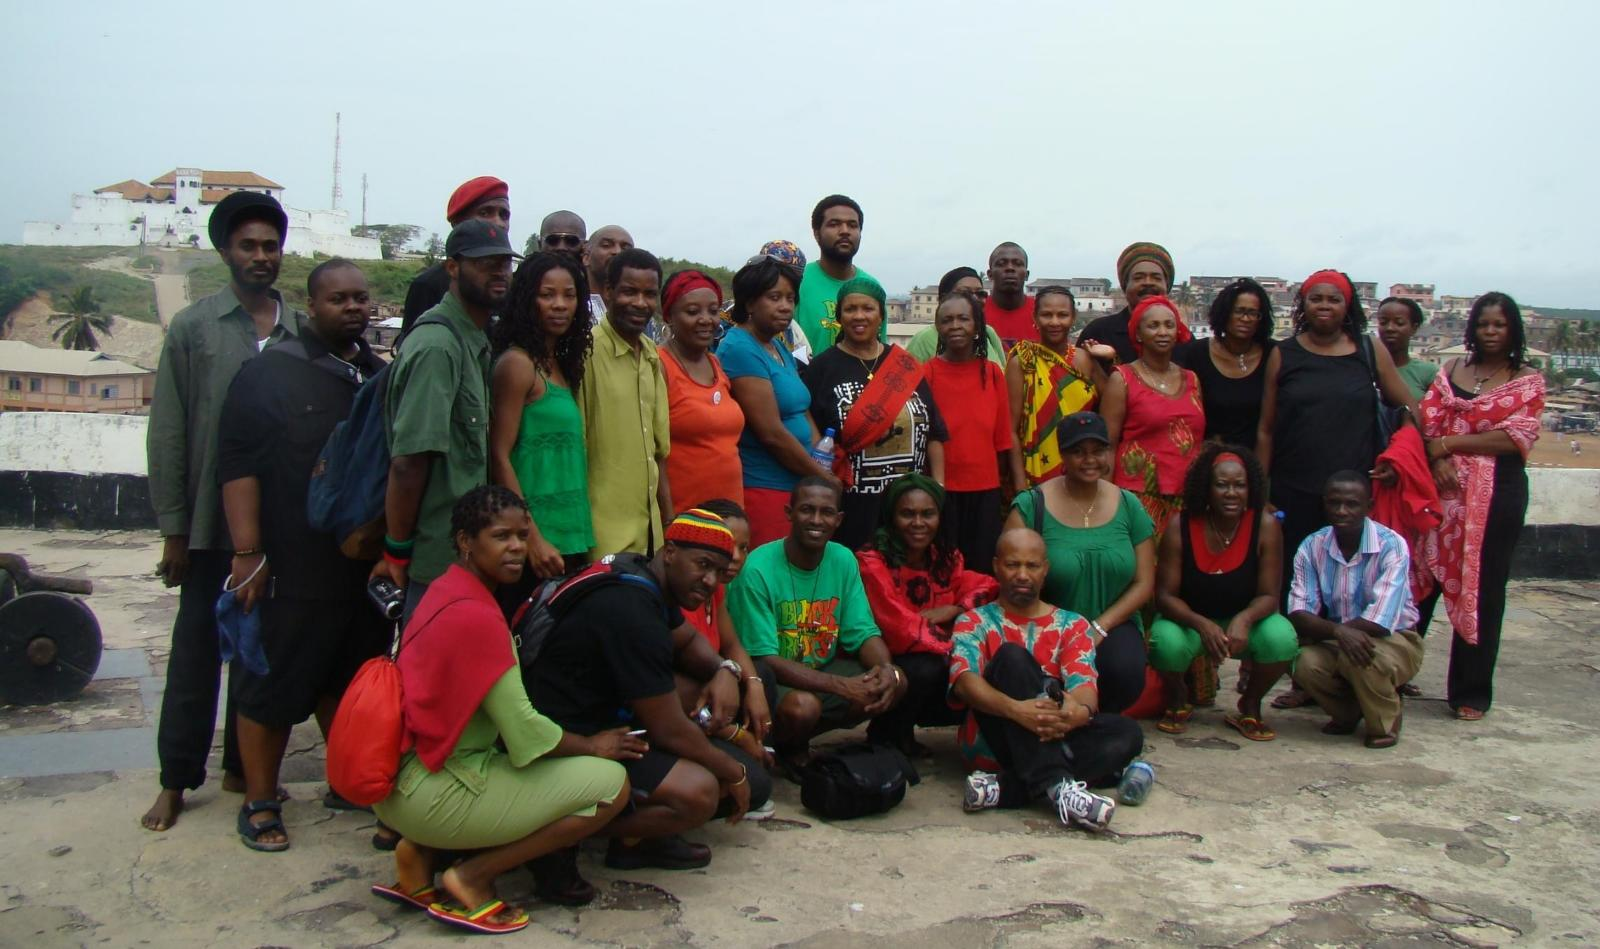 Ghana Roots, Culture & Repatriation Tour Group Oct 2008